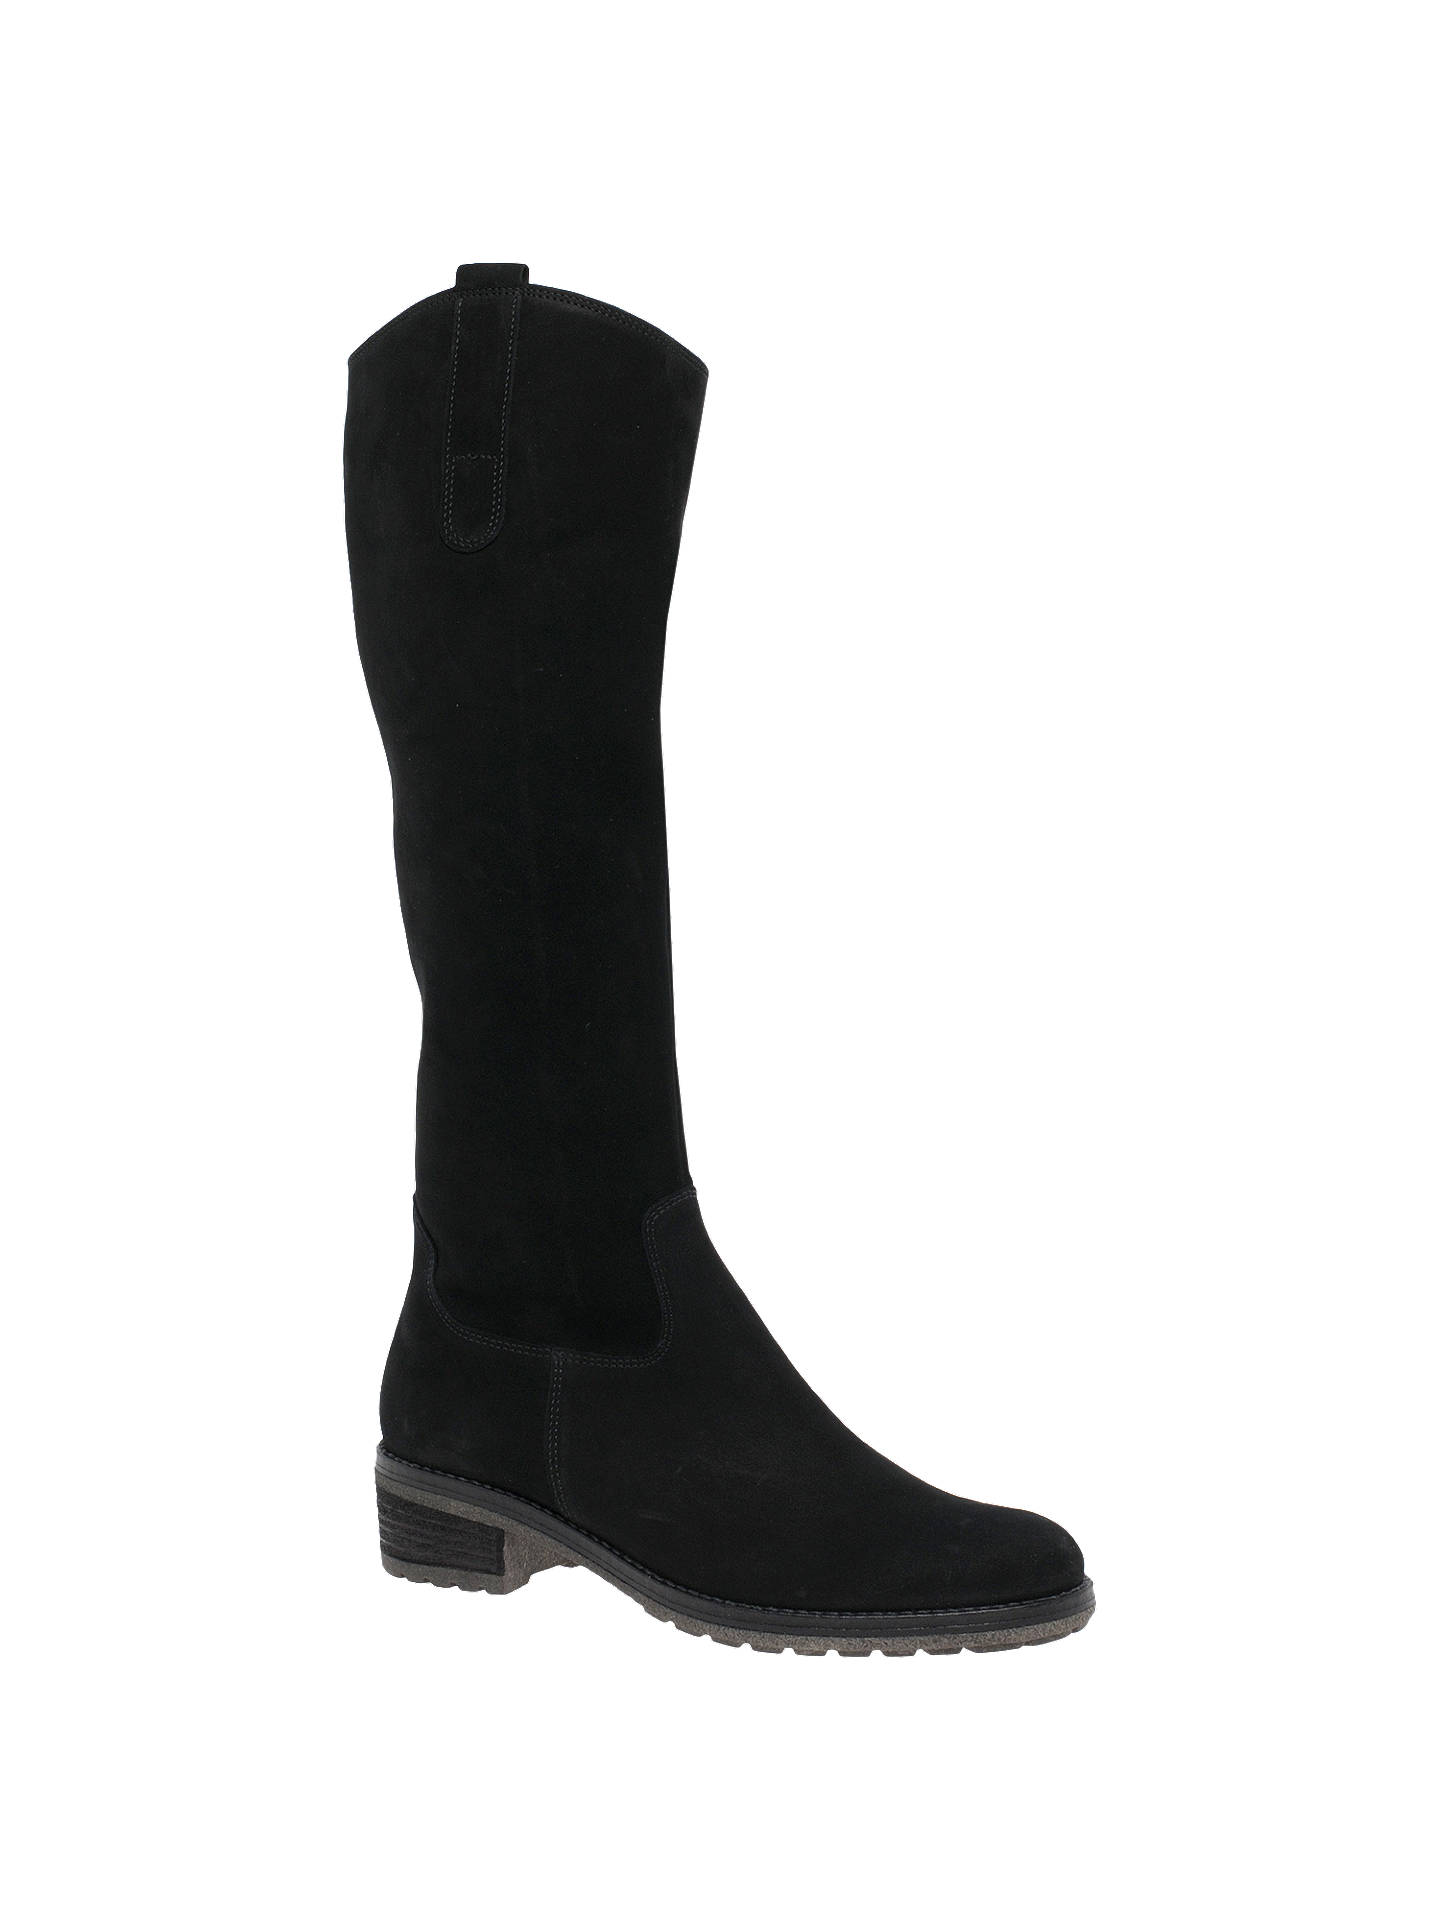 Gabor Shields Slim Fit Knee High Boots At John Lewis